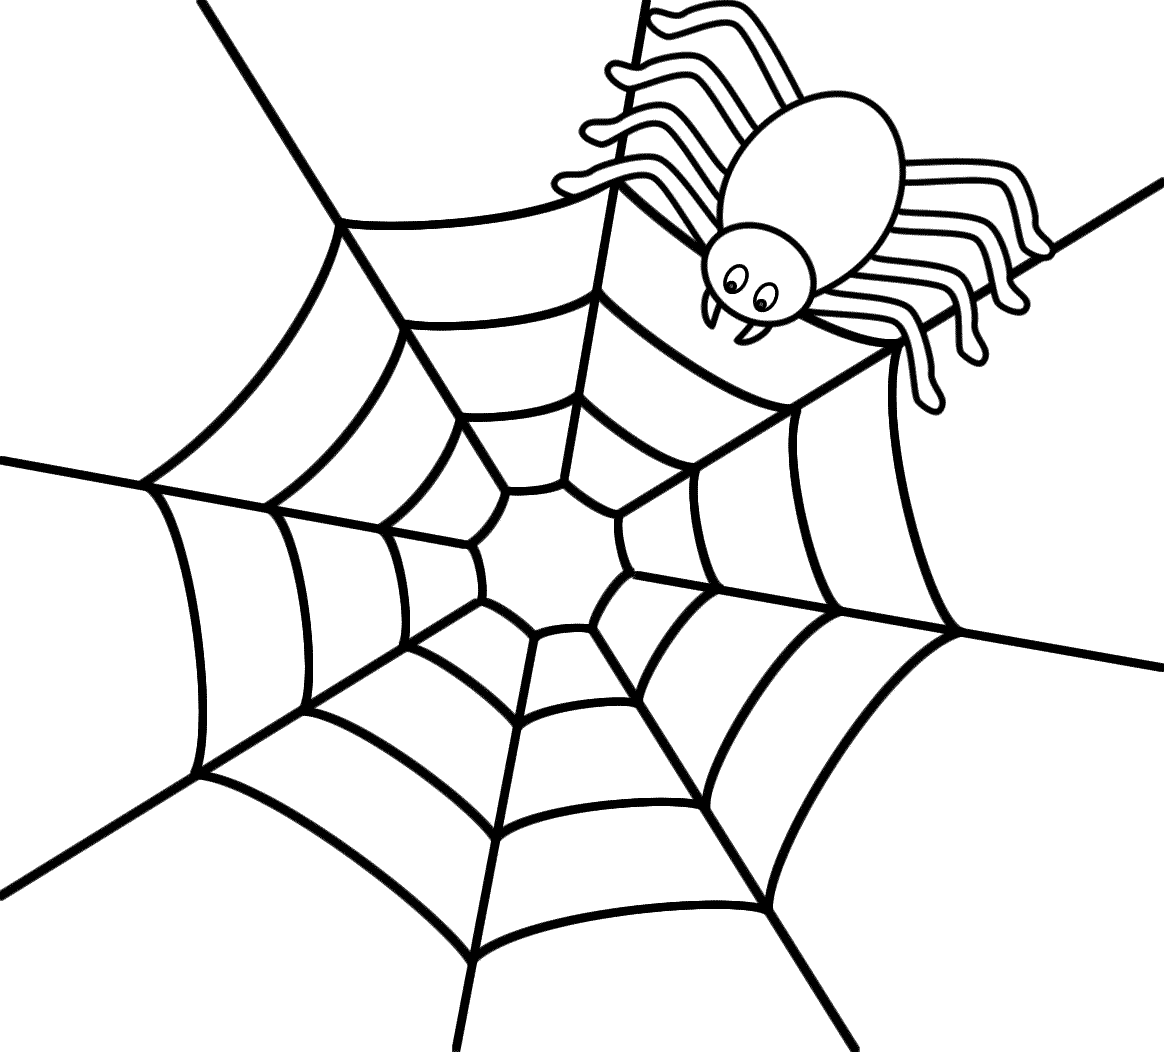 Cute Spider Template For Quiet Book Pagemdb